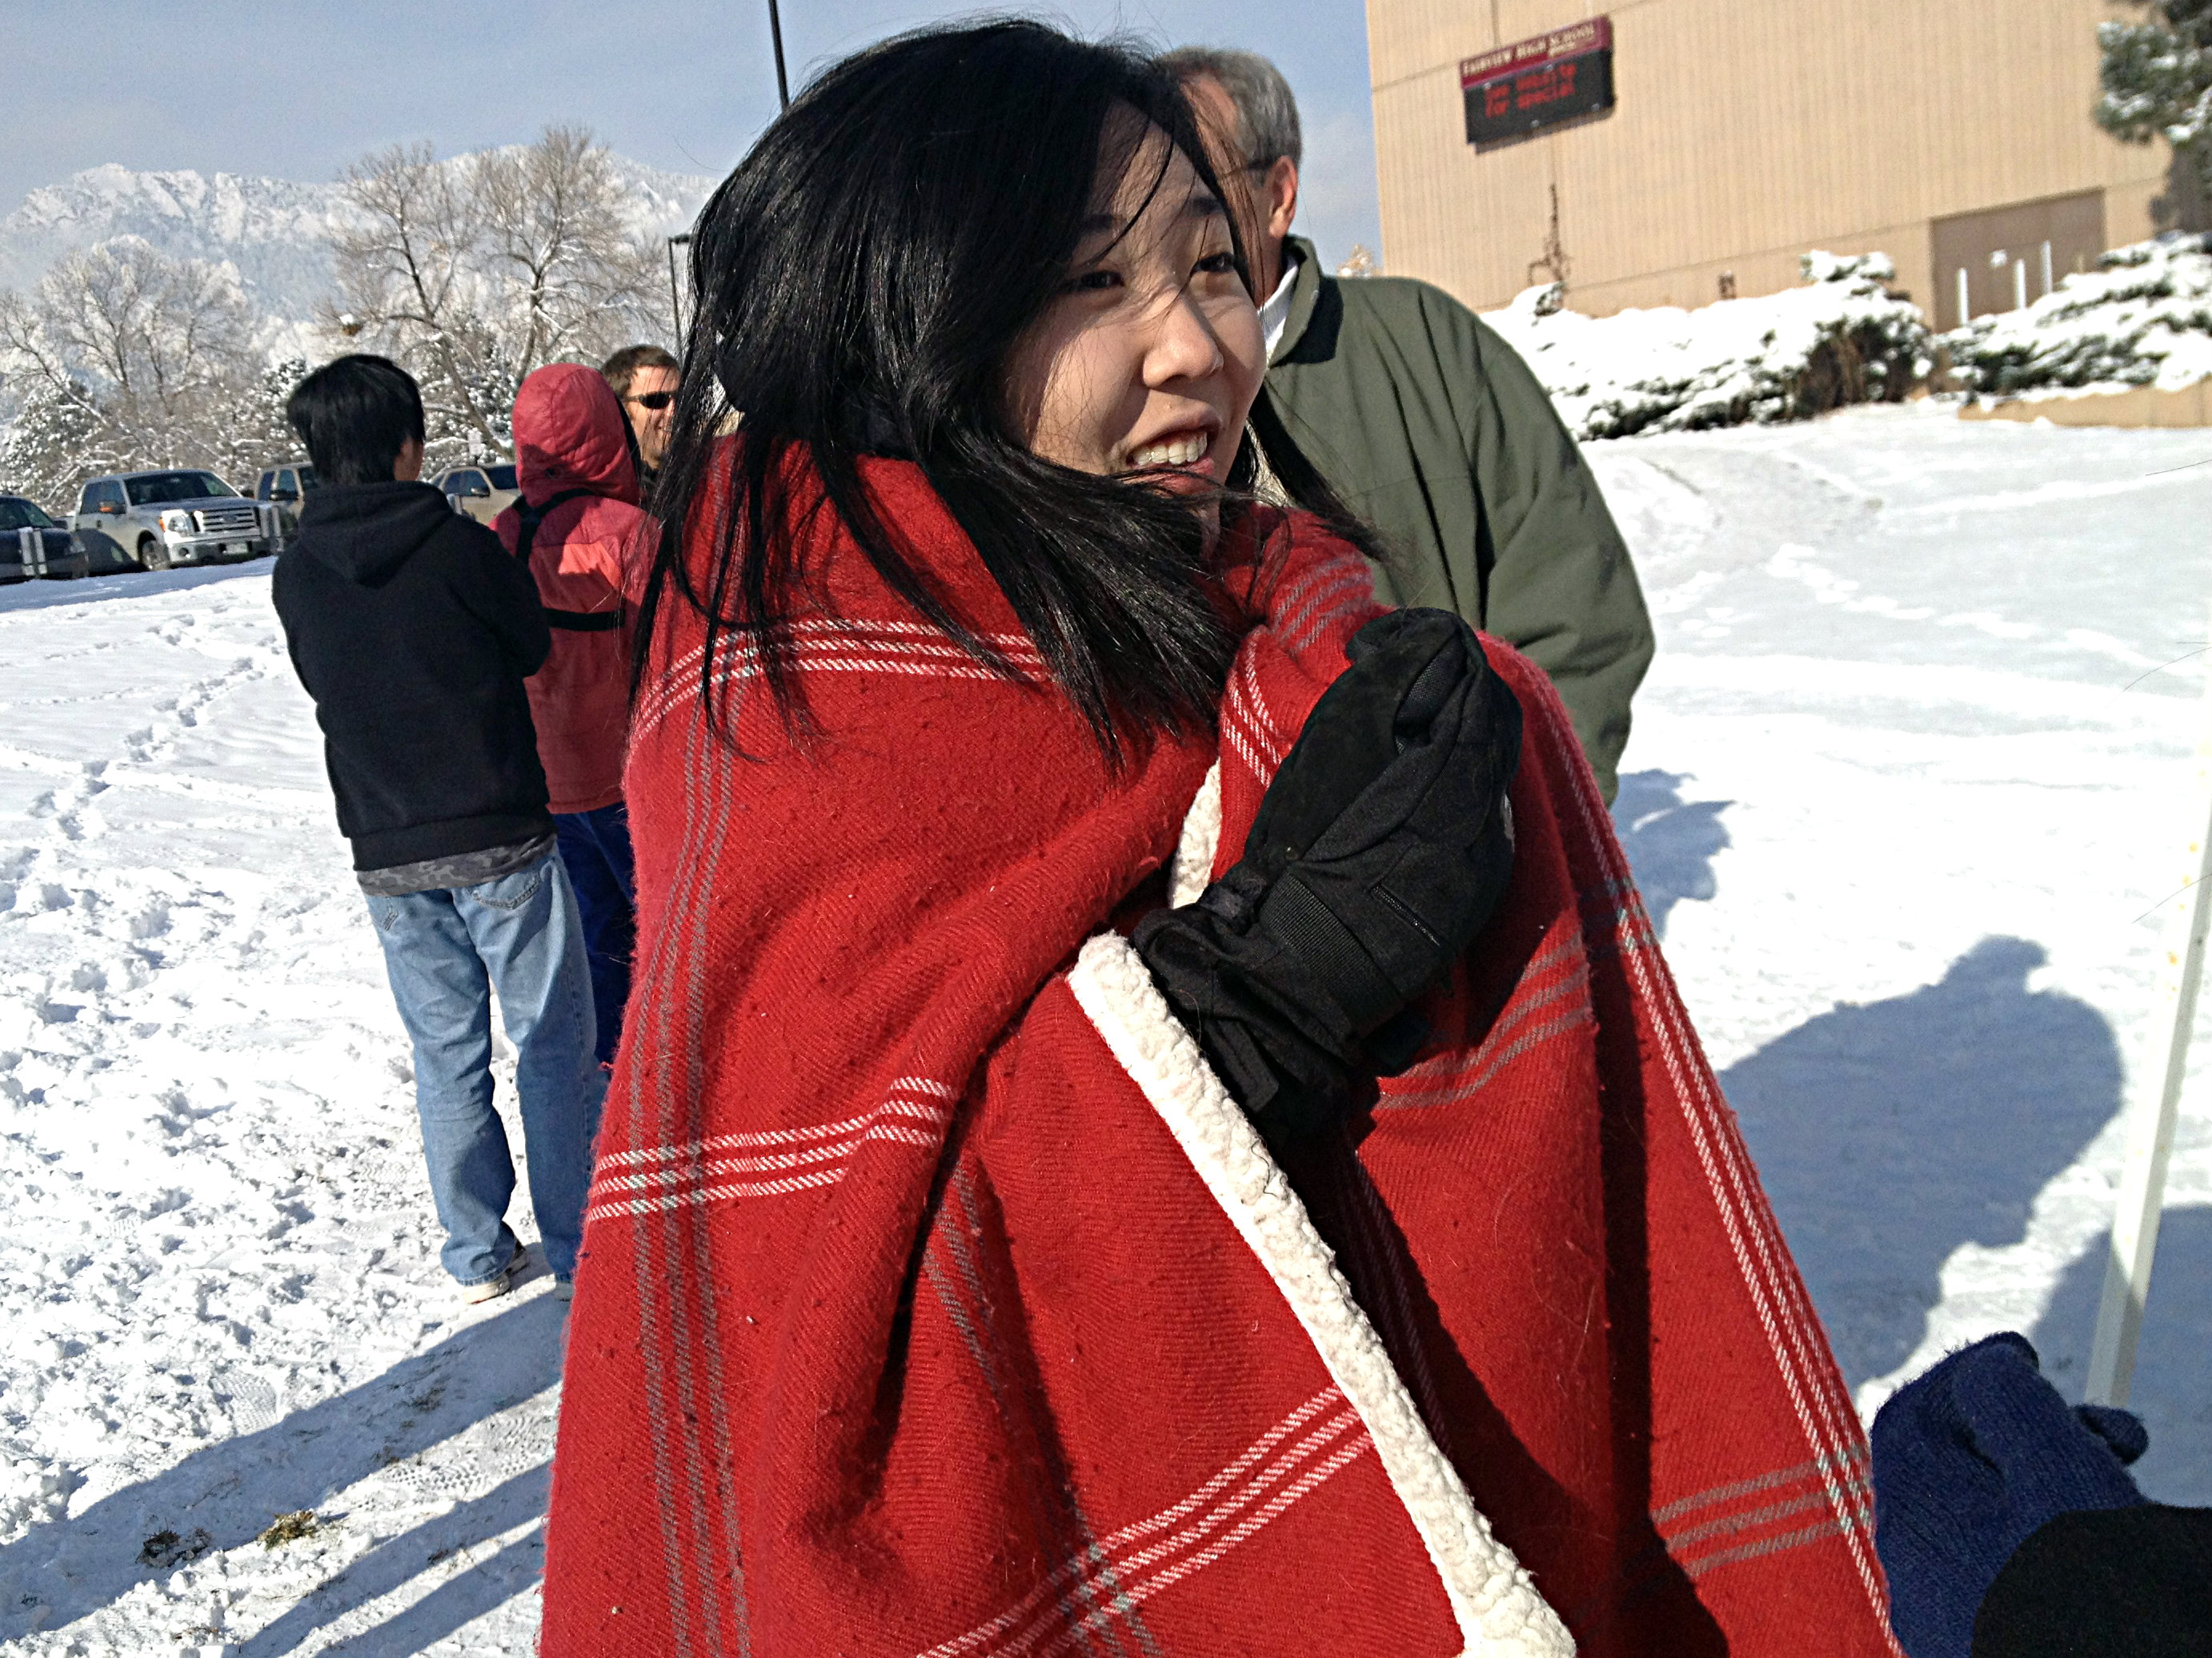 Photo: Boulder protest girl in blanket